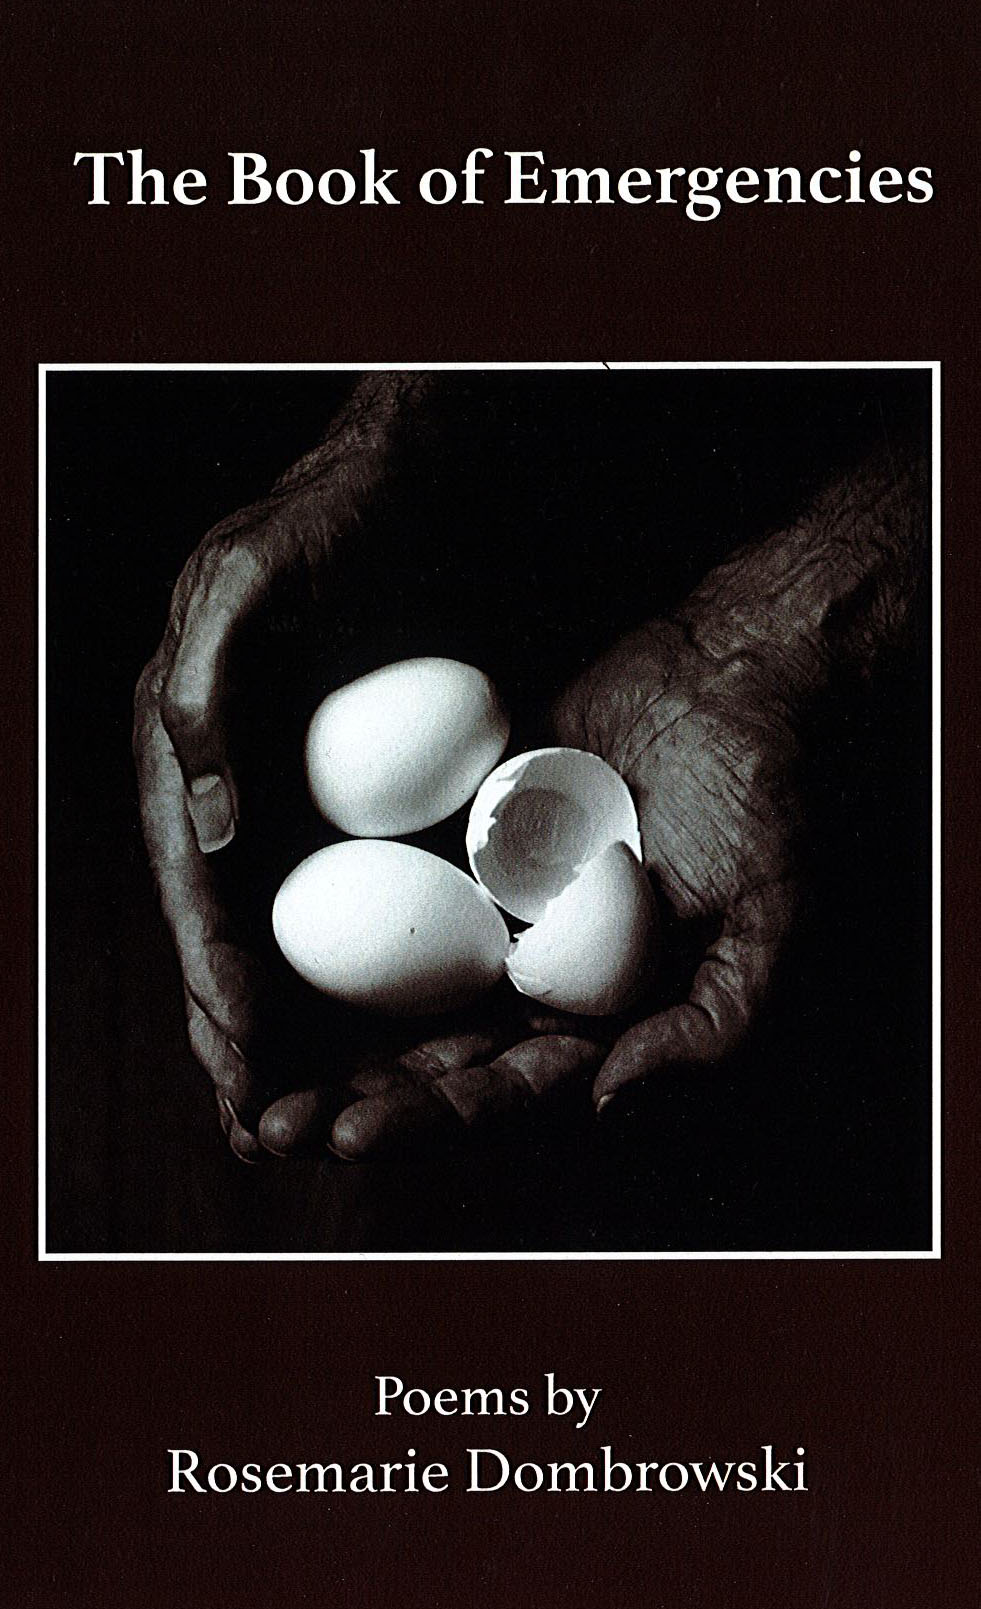 Cover of The Book of emergencies: Hands holding egg shells, one broken